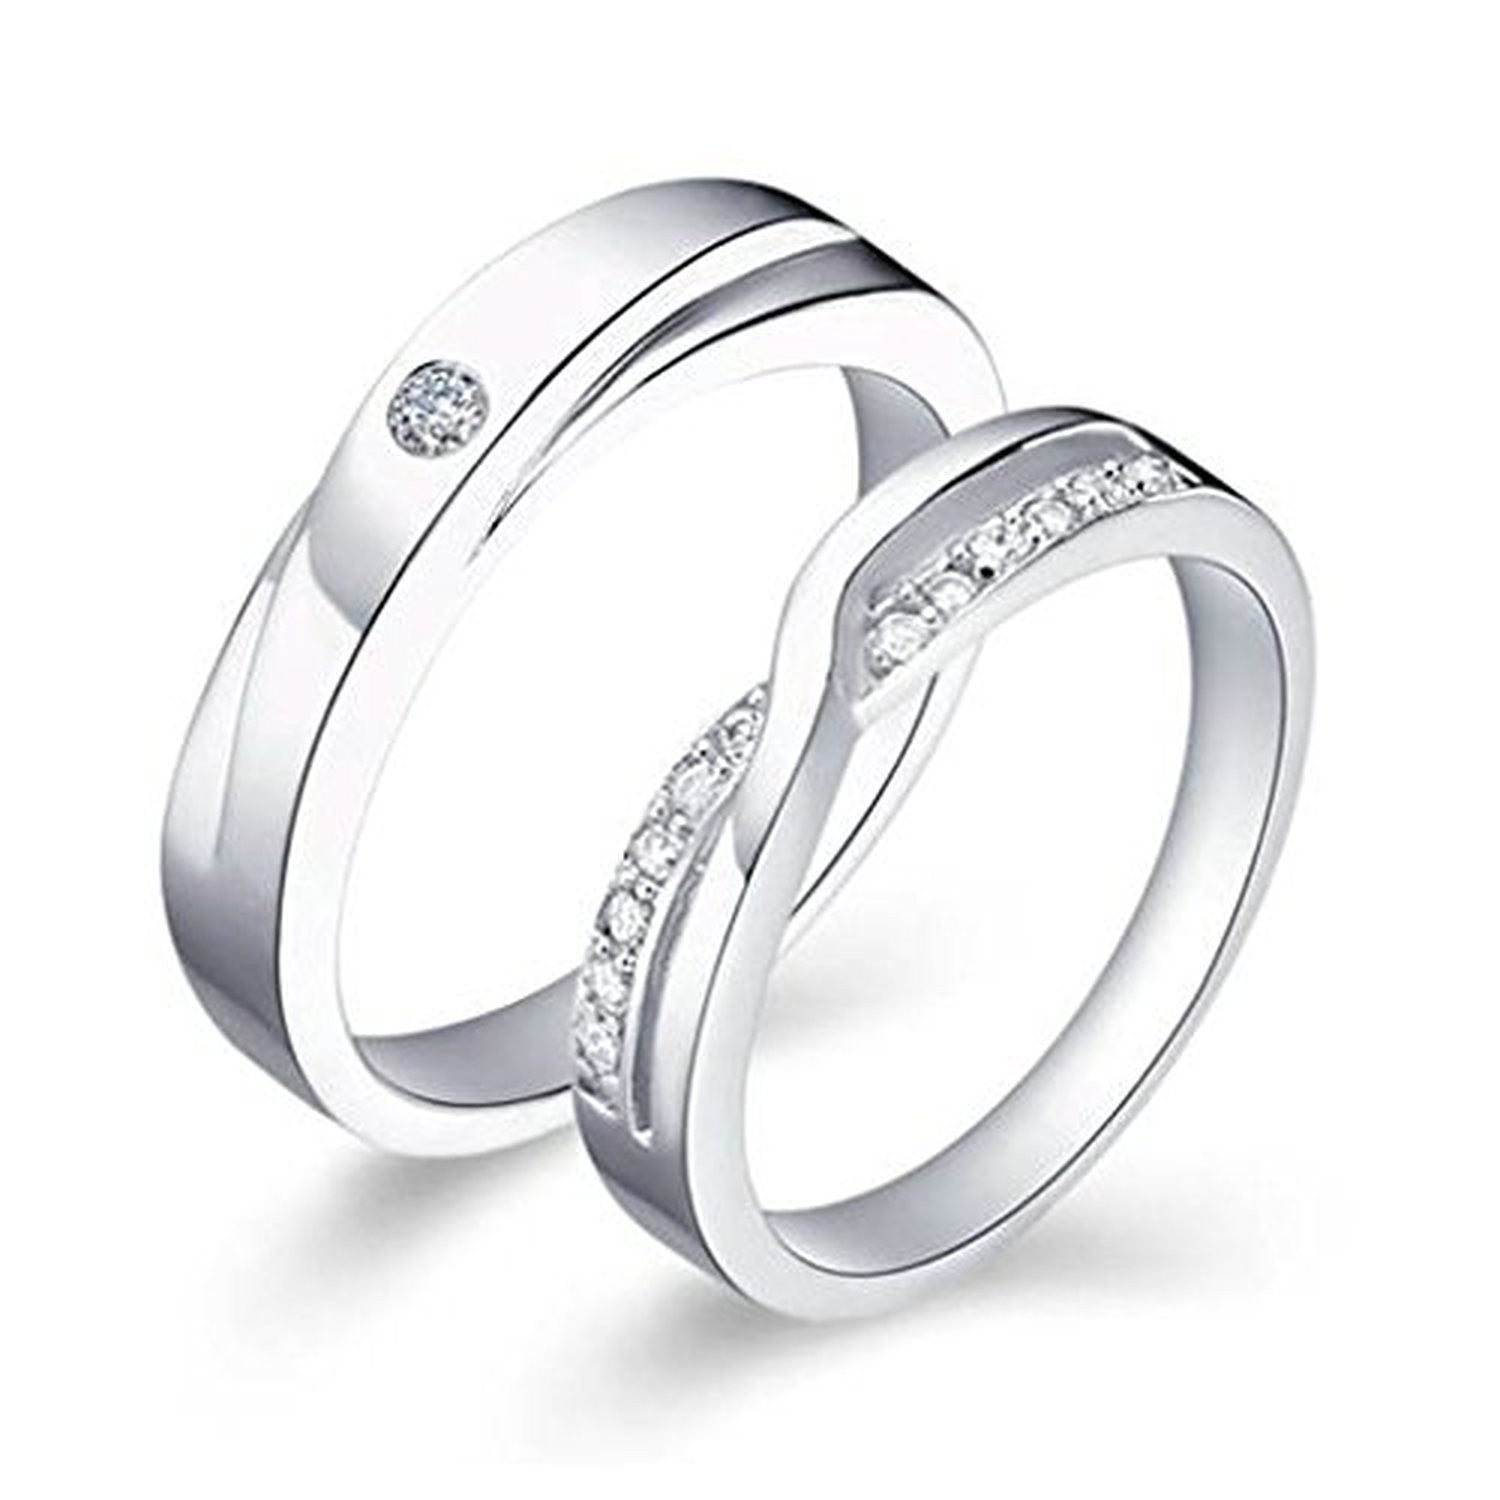 com promise design u evermarker couples rings unique for engagement leaves couple ring wedding platinum amazoncom athelred cz diamond stripe